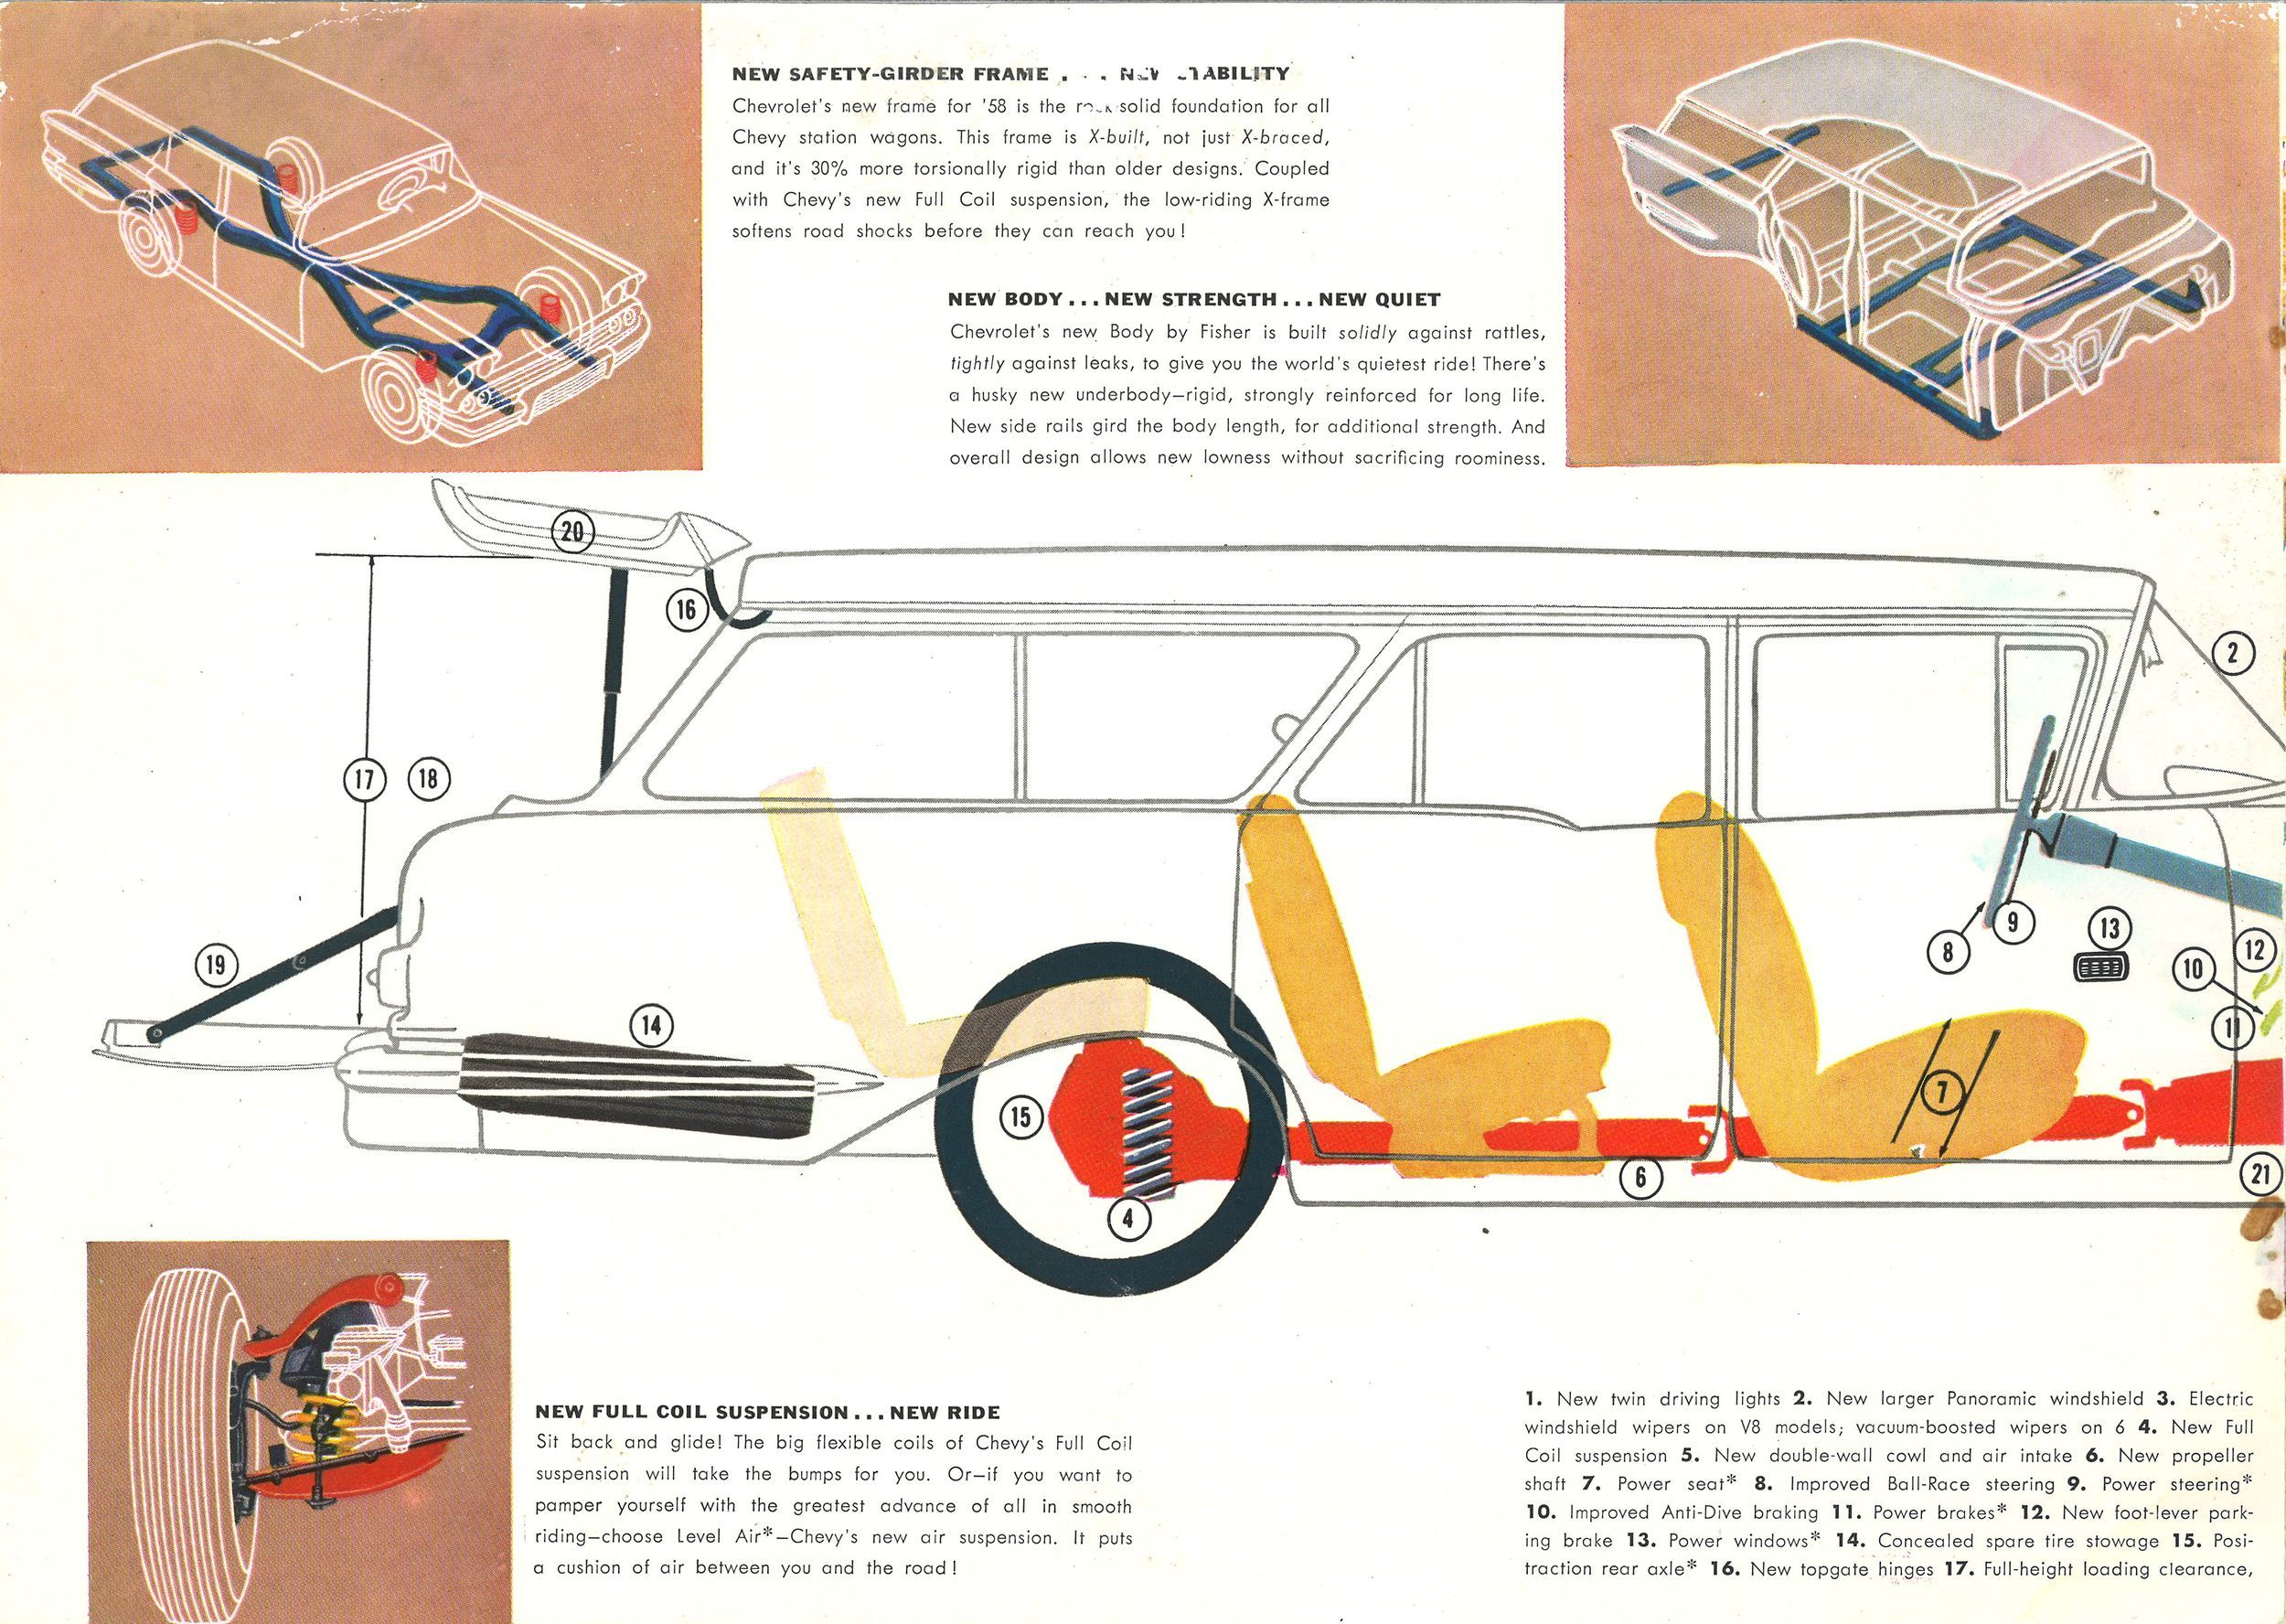 7a6dcc7abf9c14ef3fb0ec7d0883581a long roof love 1958 chevrolet station wagon brochure station